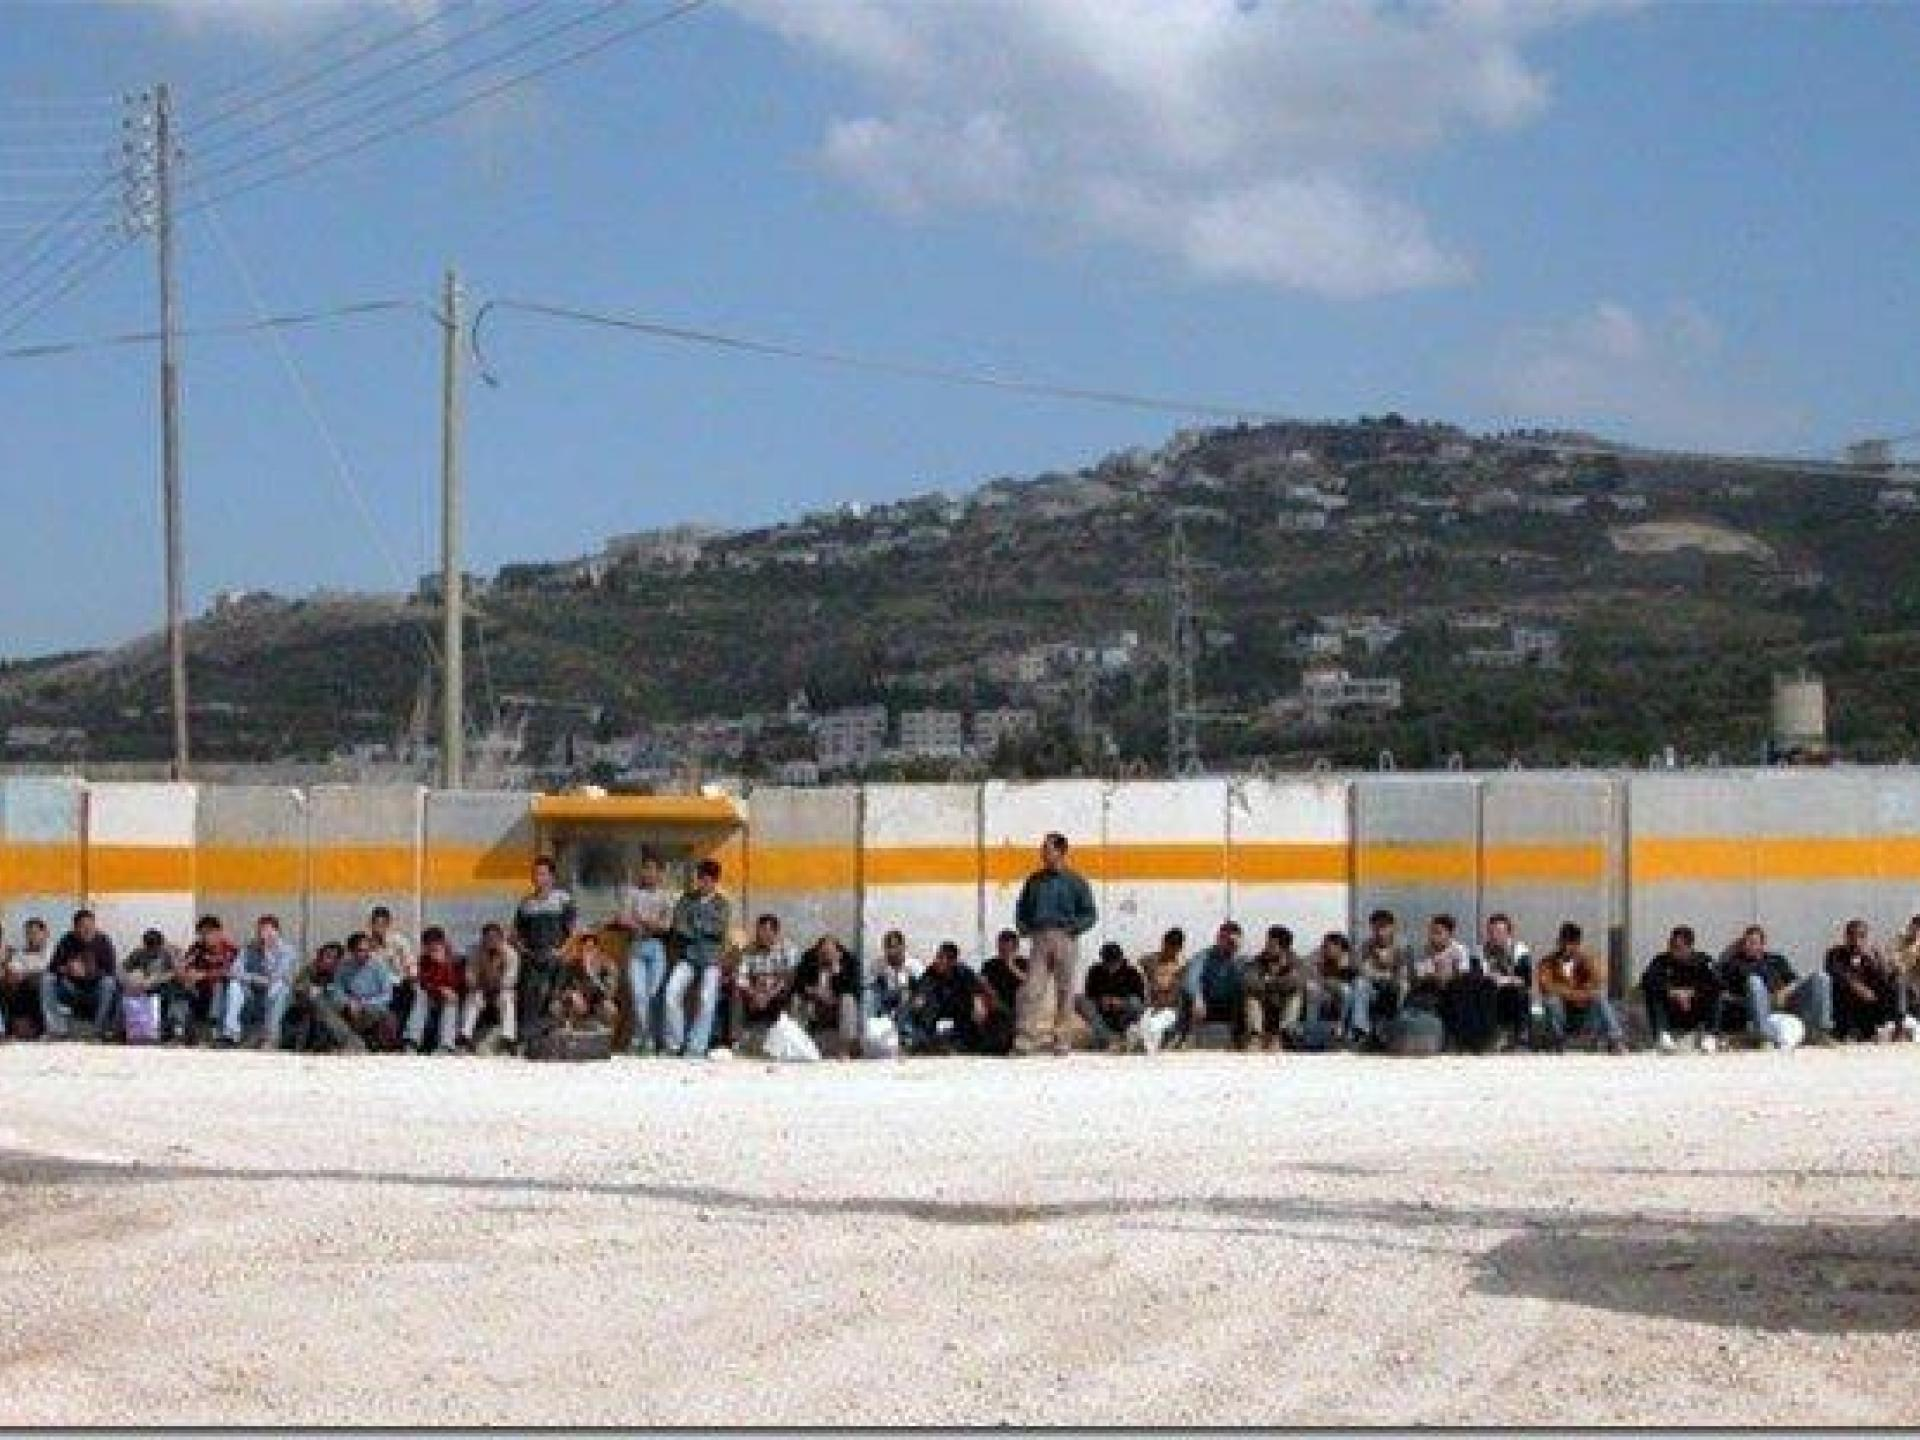 Beit-Iba checkpoint 22.04.04